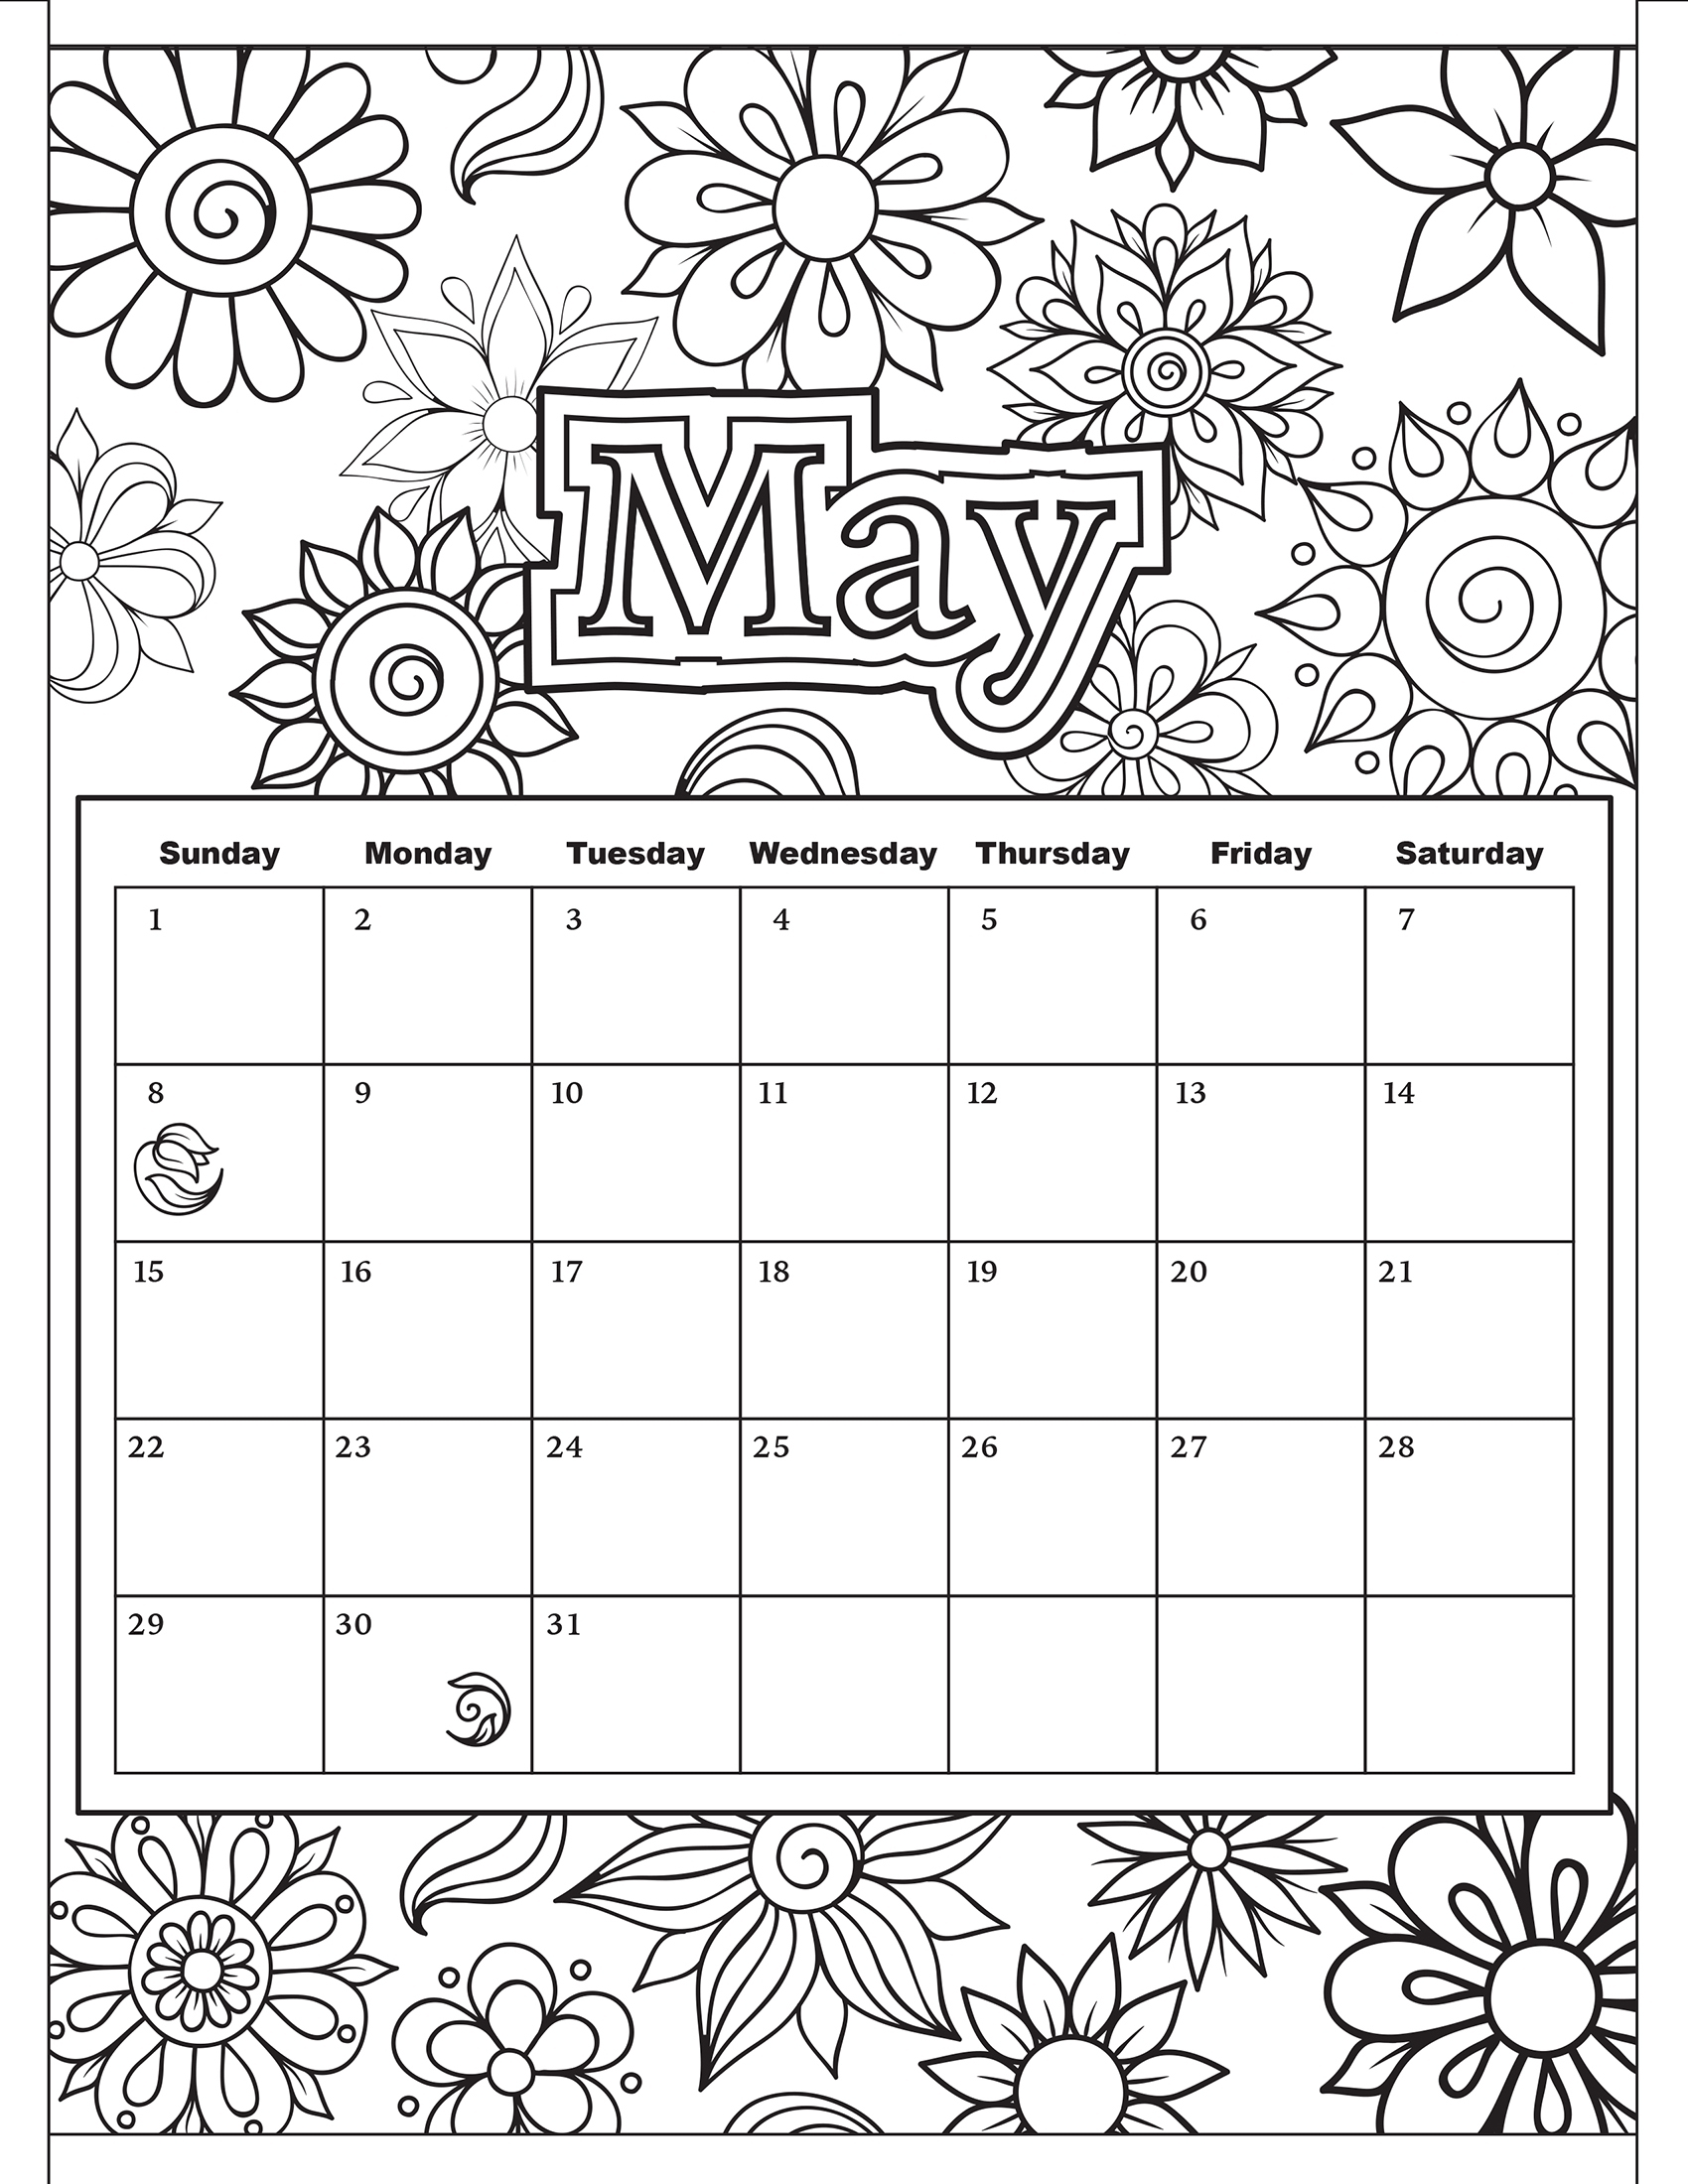 Coloring Pages : Stunning Calendar Coloring Pages Free To